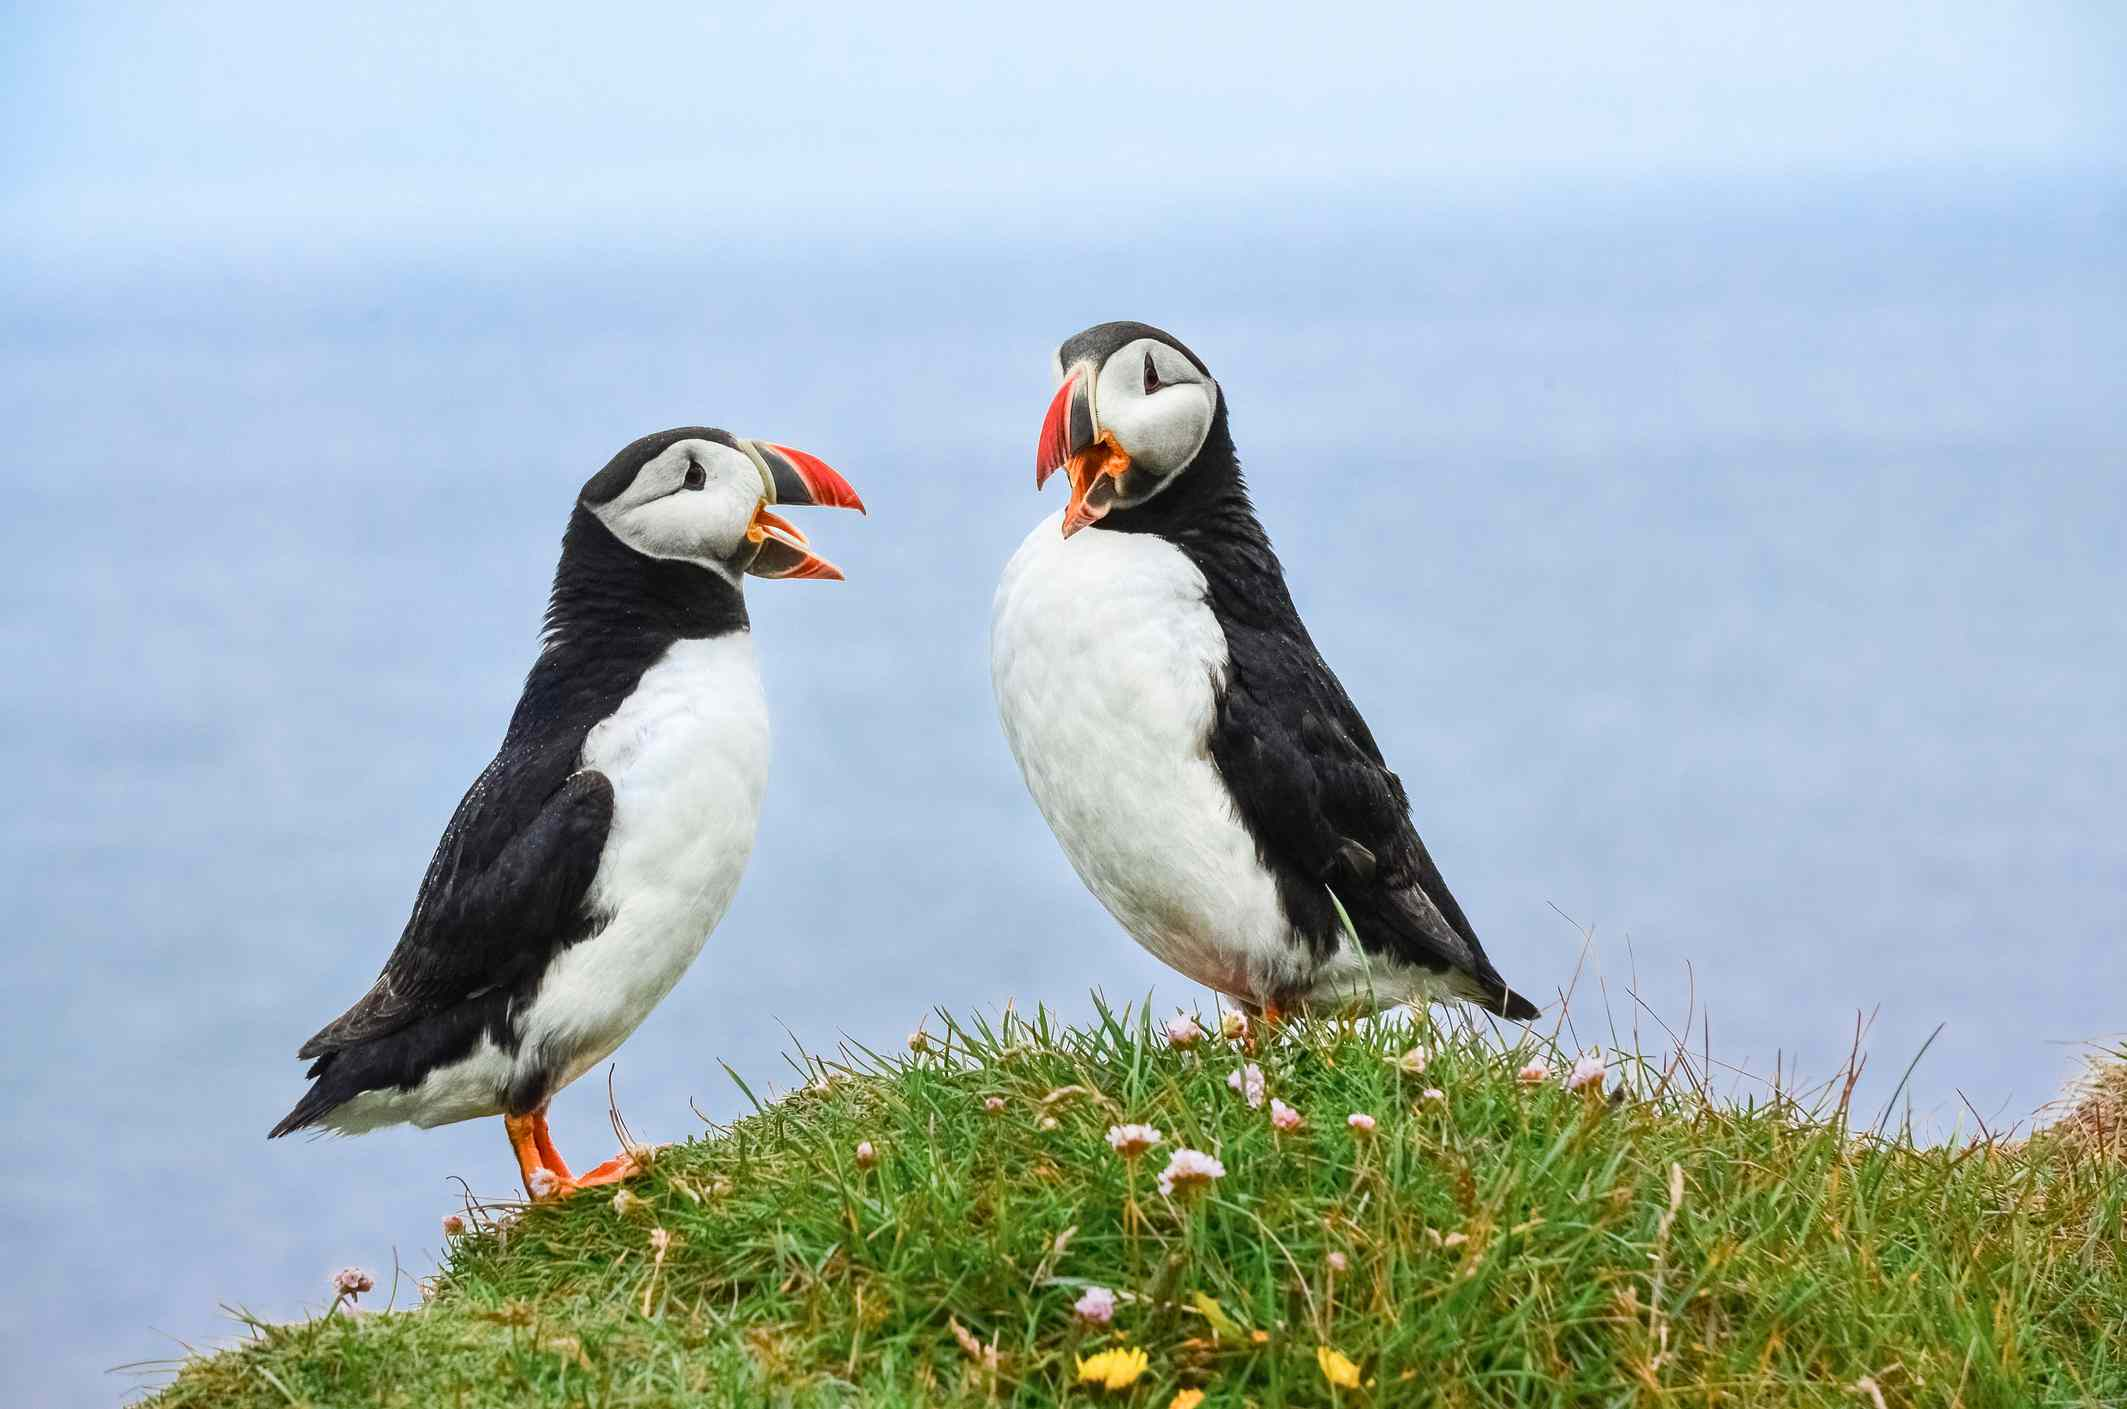 Two Atlantic puffins in Iceland